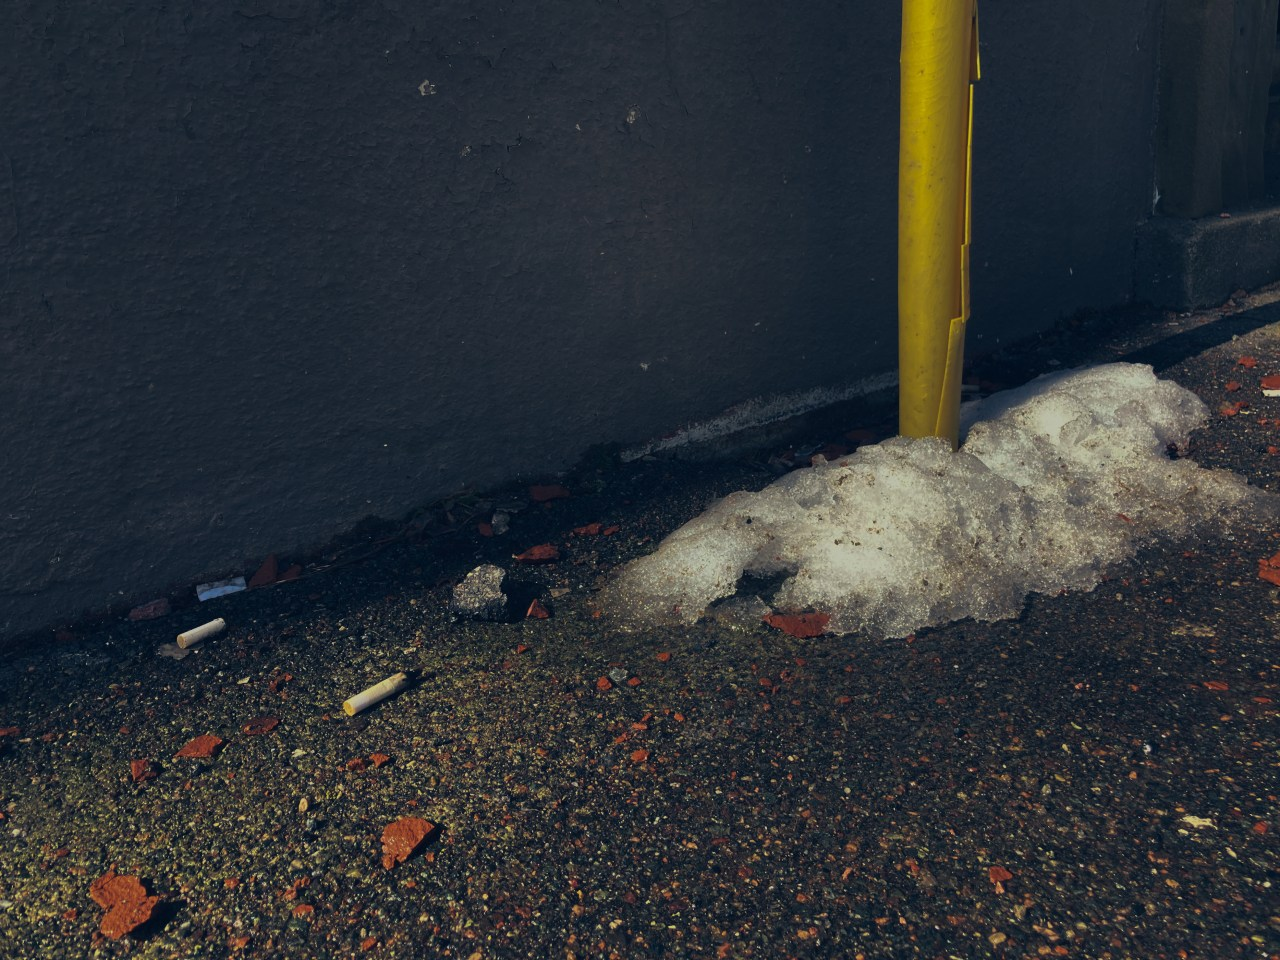 A photo of cigarette butts on canterbury street